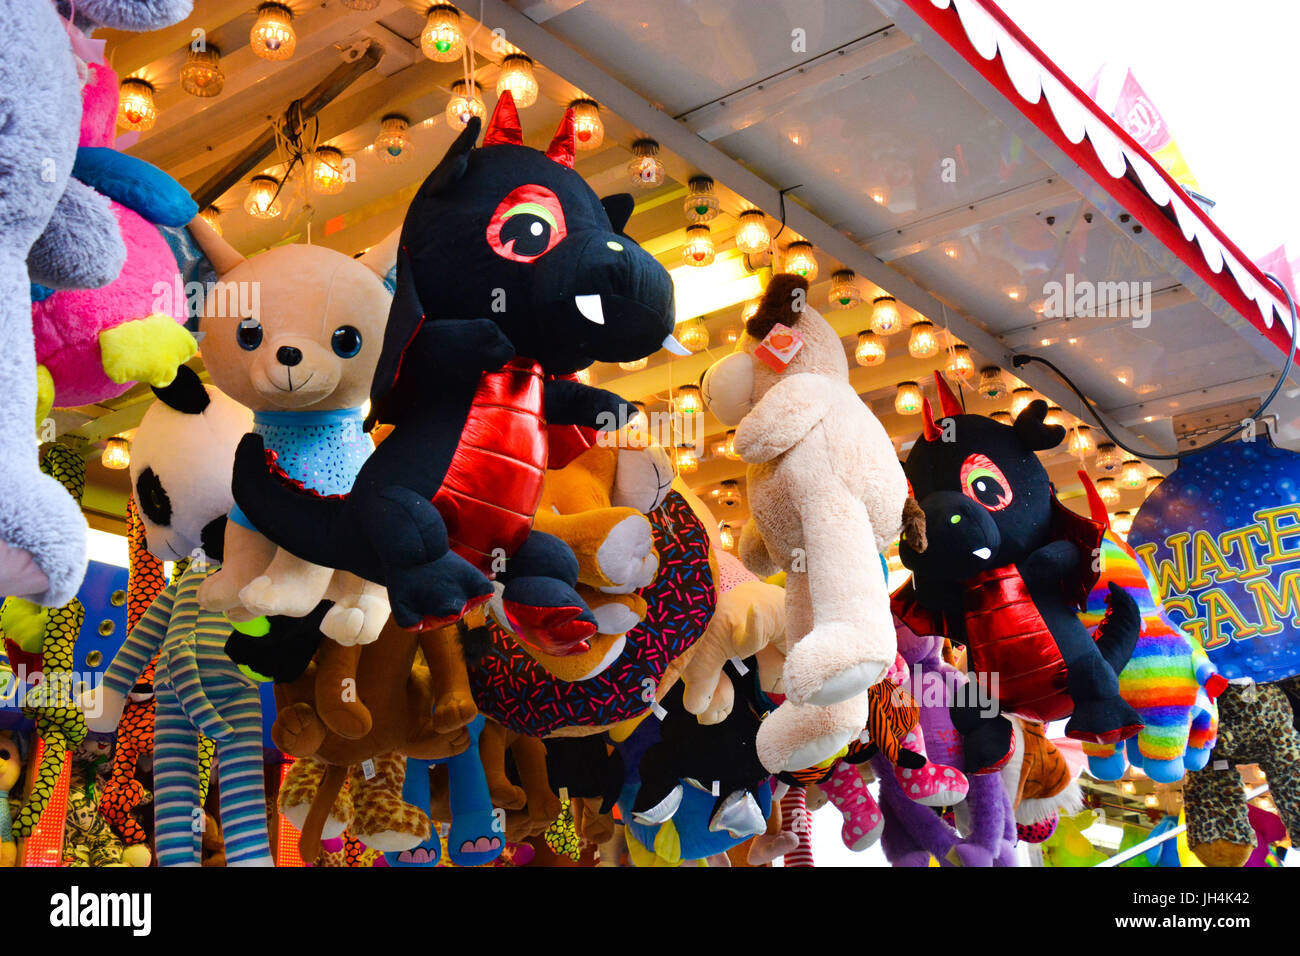 Carnival Prize Stuffed Animal Stock Photos Carnival Prize Stuffed